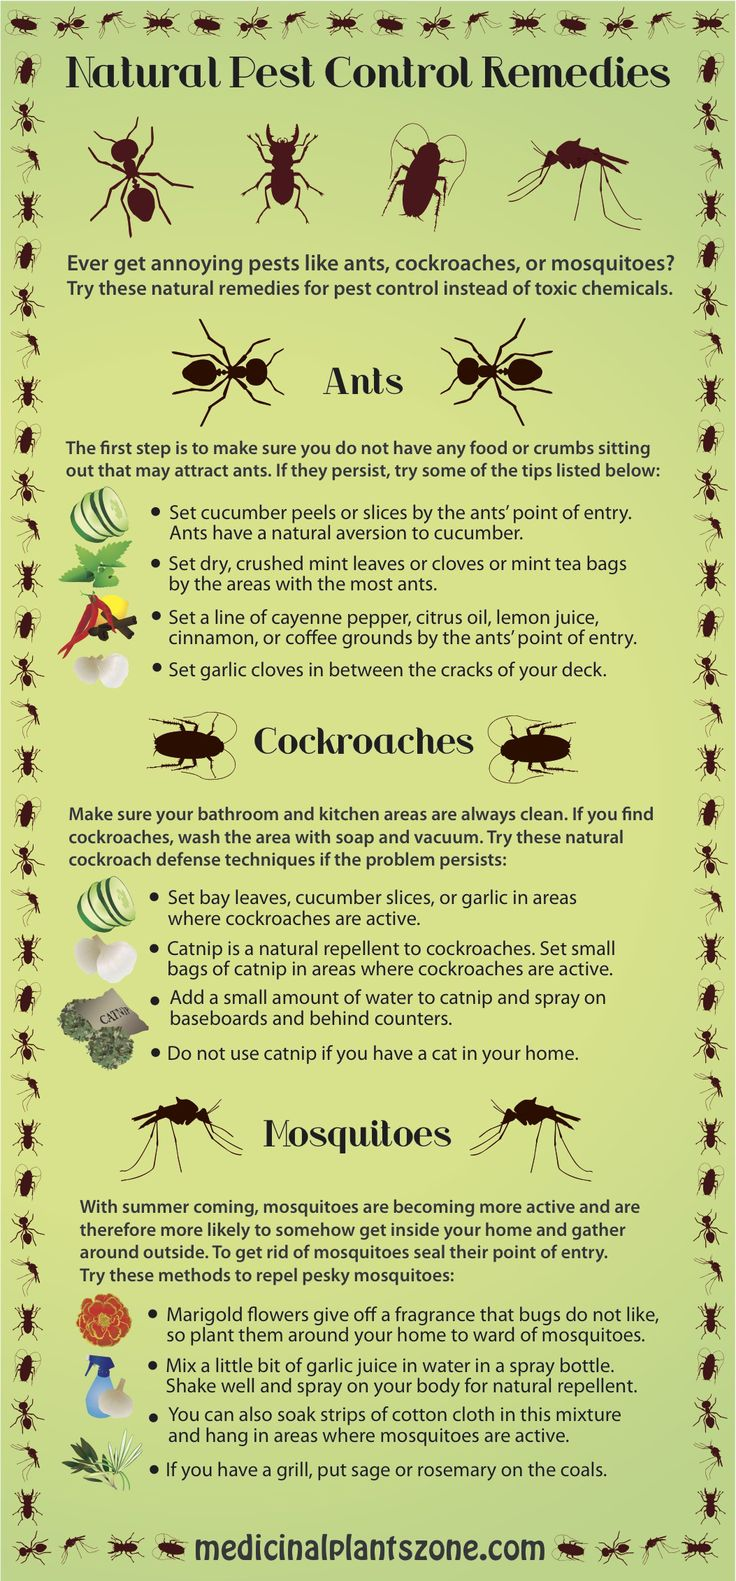 To Repel Pests In Or Around Your Home, Try These Natural Pest Control  Remedies To Deter Mosquitoes, Ants And Cockroaches From Coming Near.